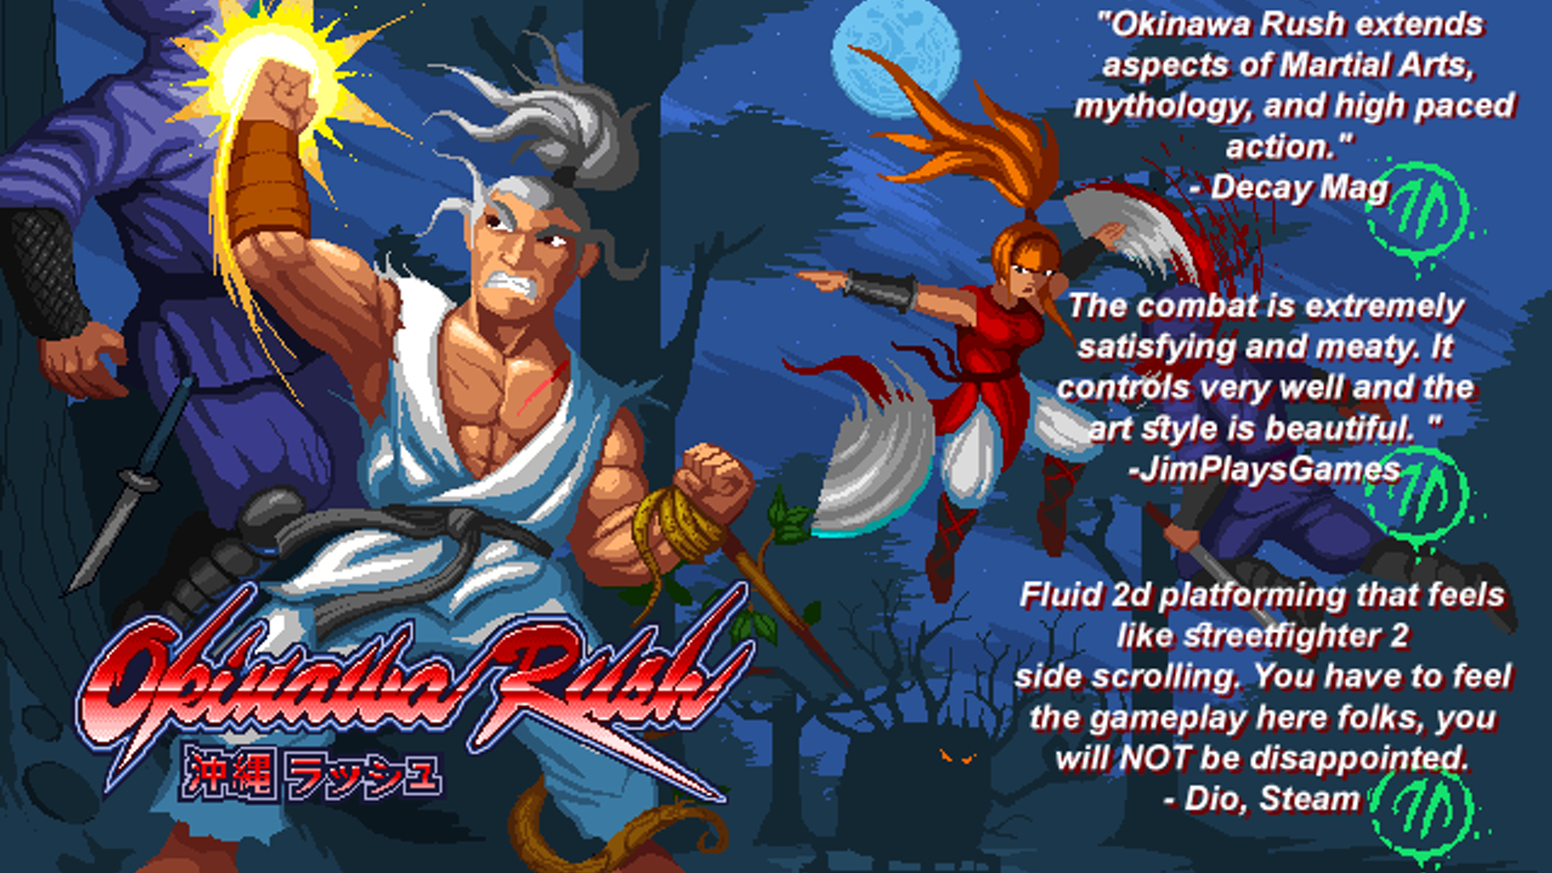 Okinawa Rush - a platform/fighting game with RPG elements